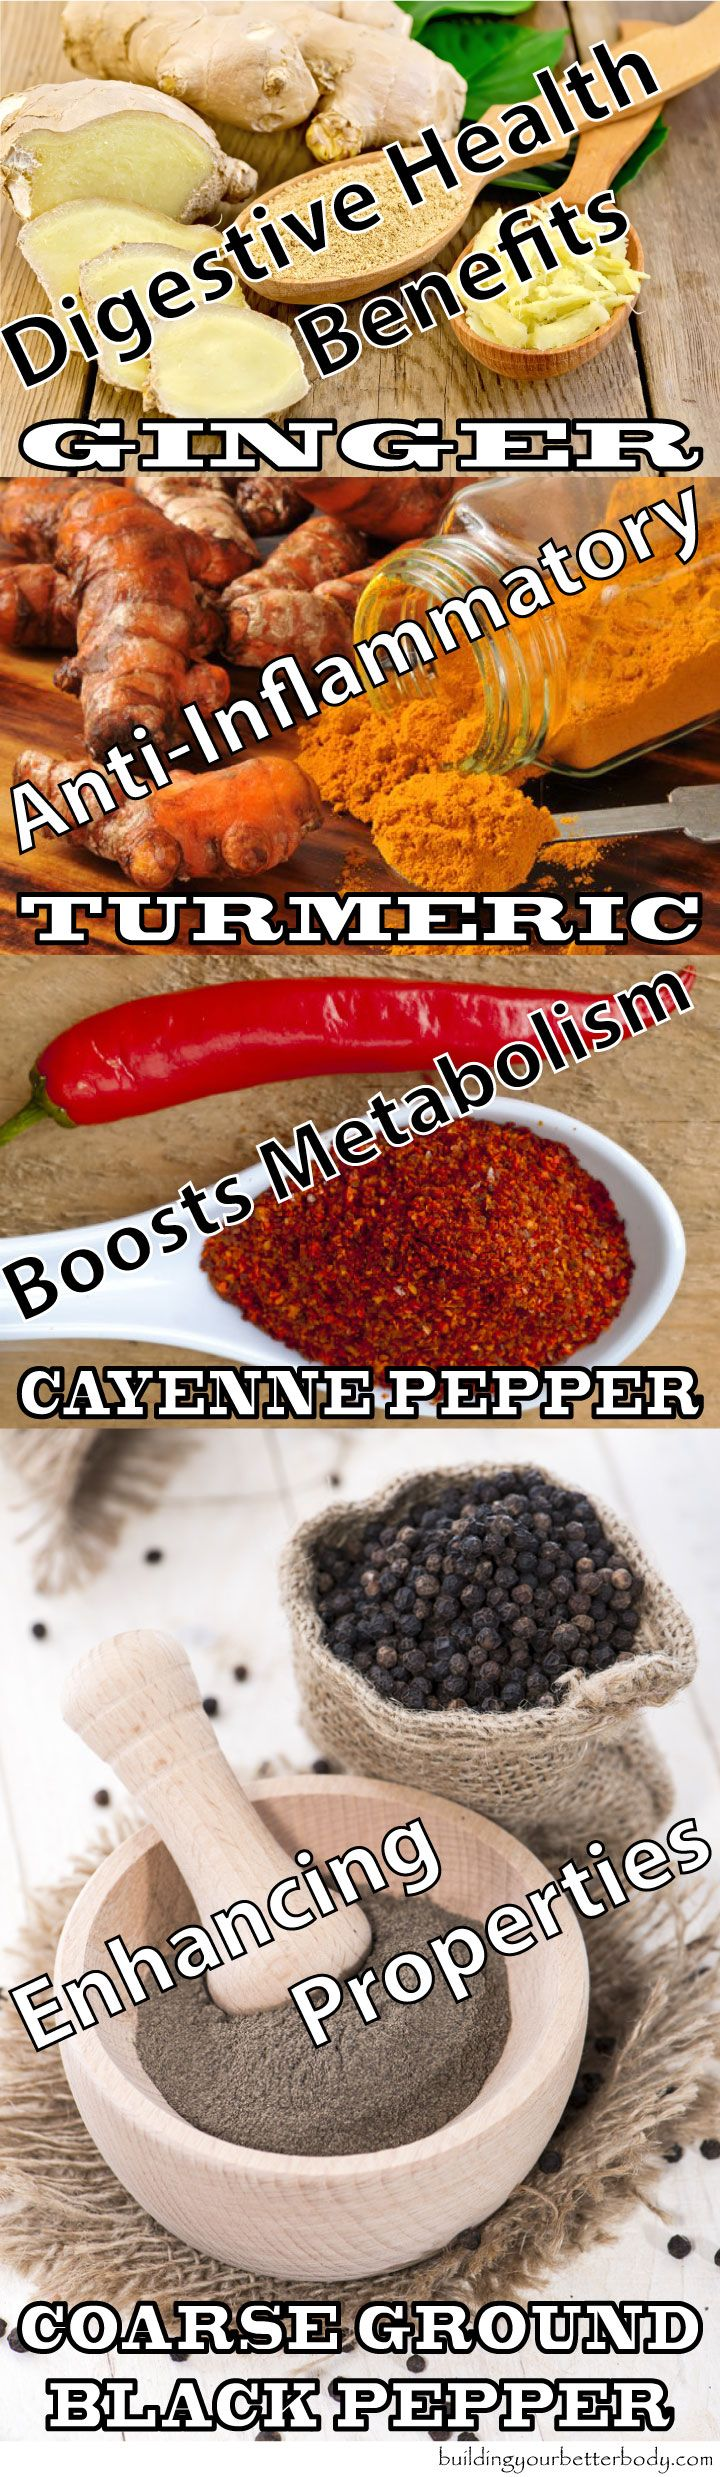 health benefits of turmeric, ginger, cayenne pepper and black pepper